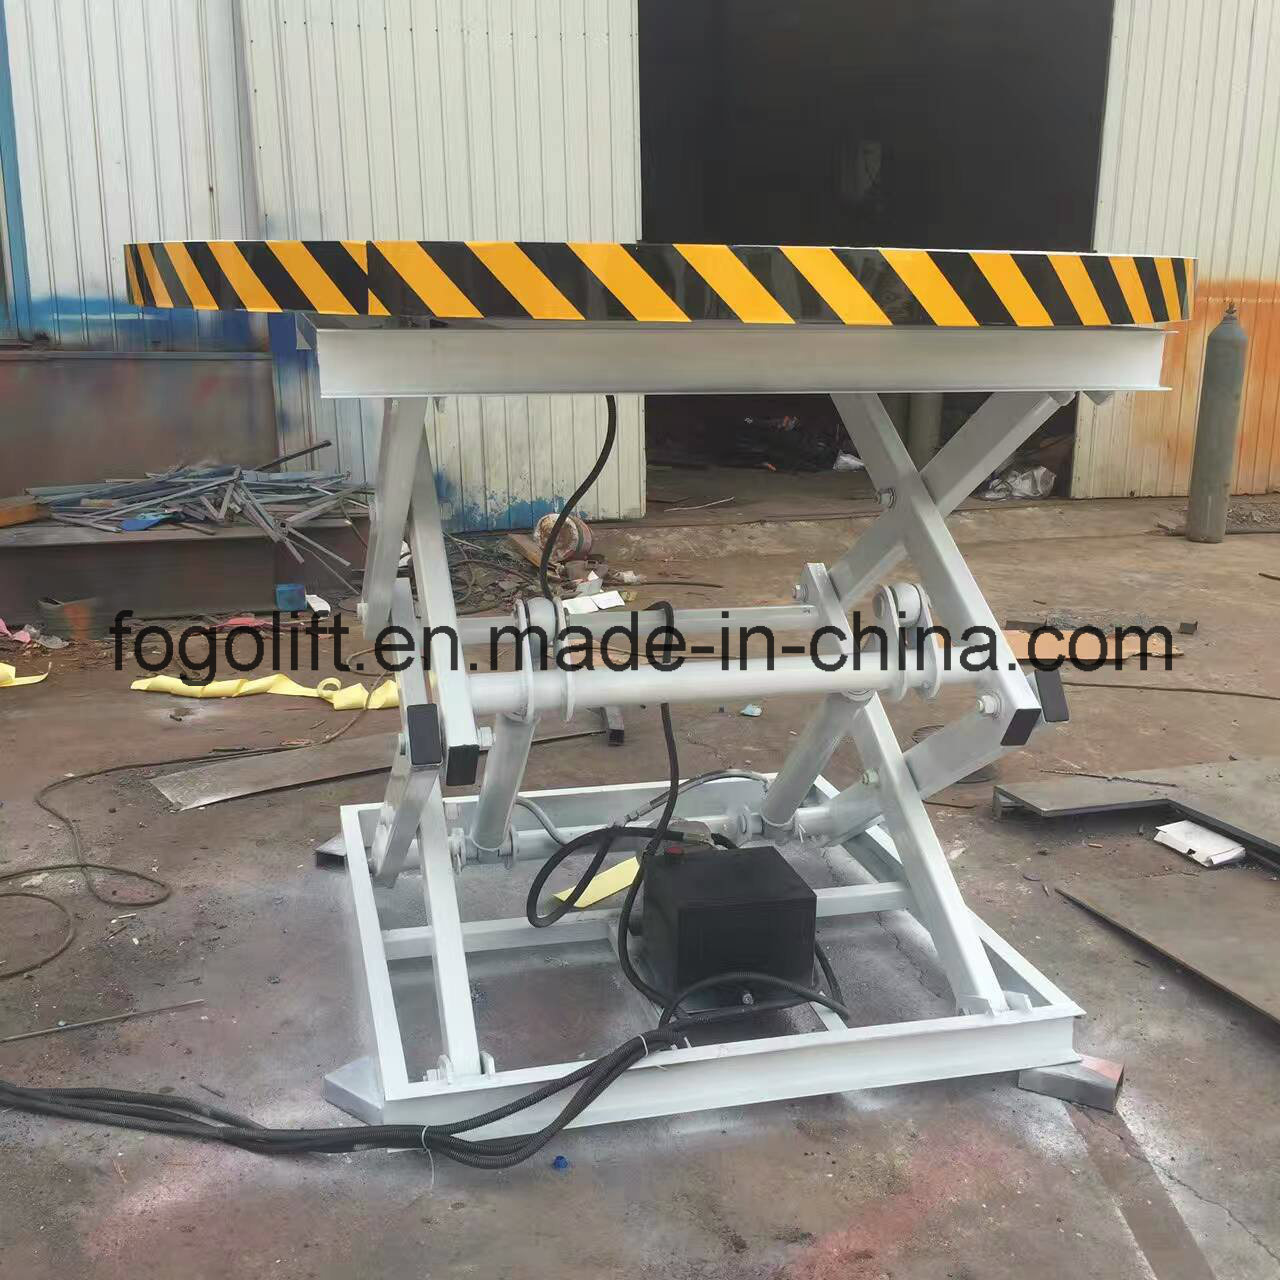 Lifting Stage / Rotatable Stage / Performance Stage Lift